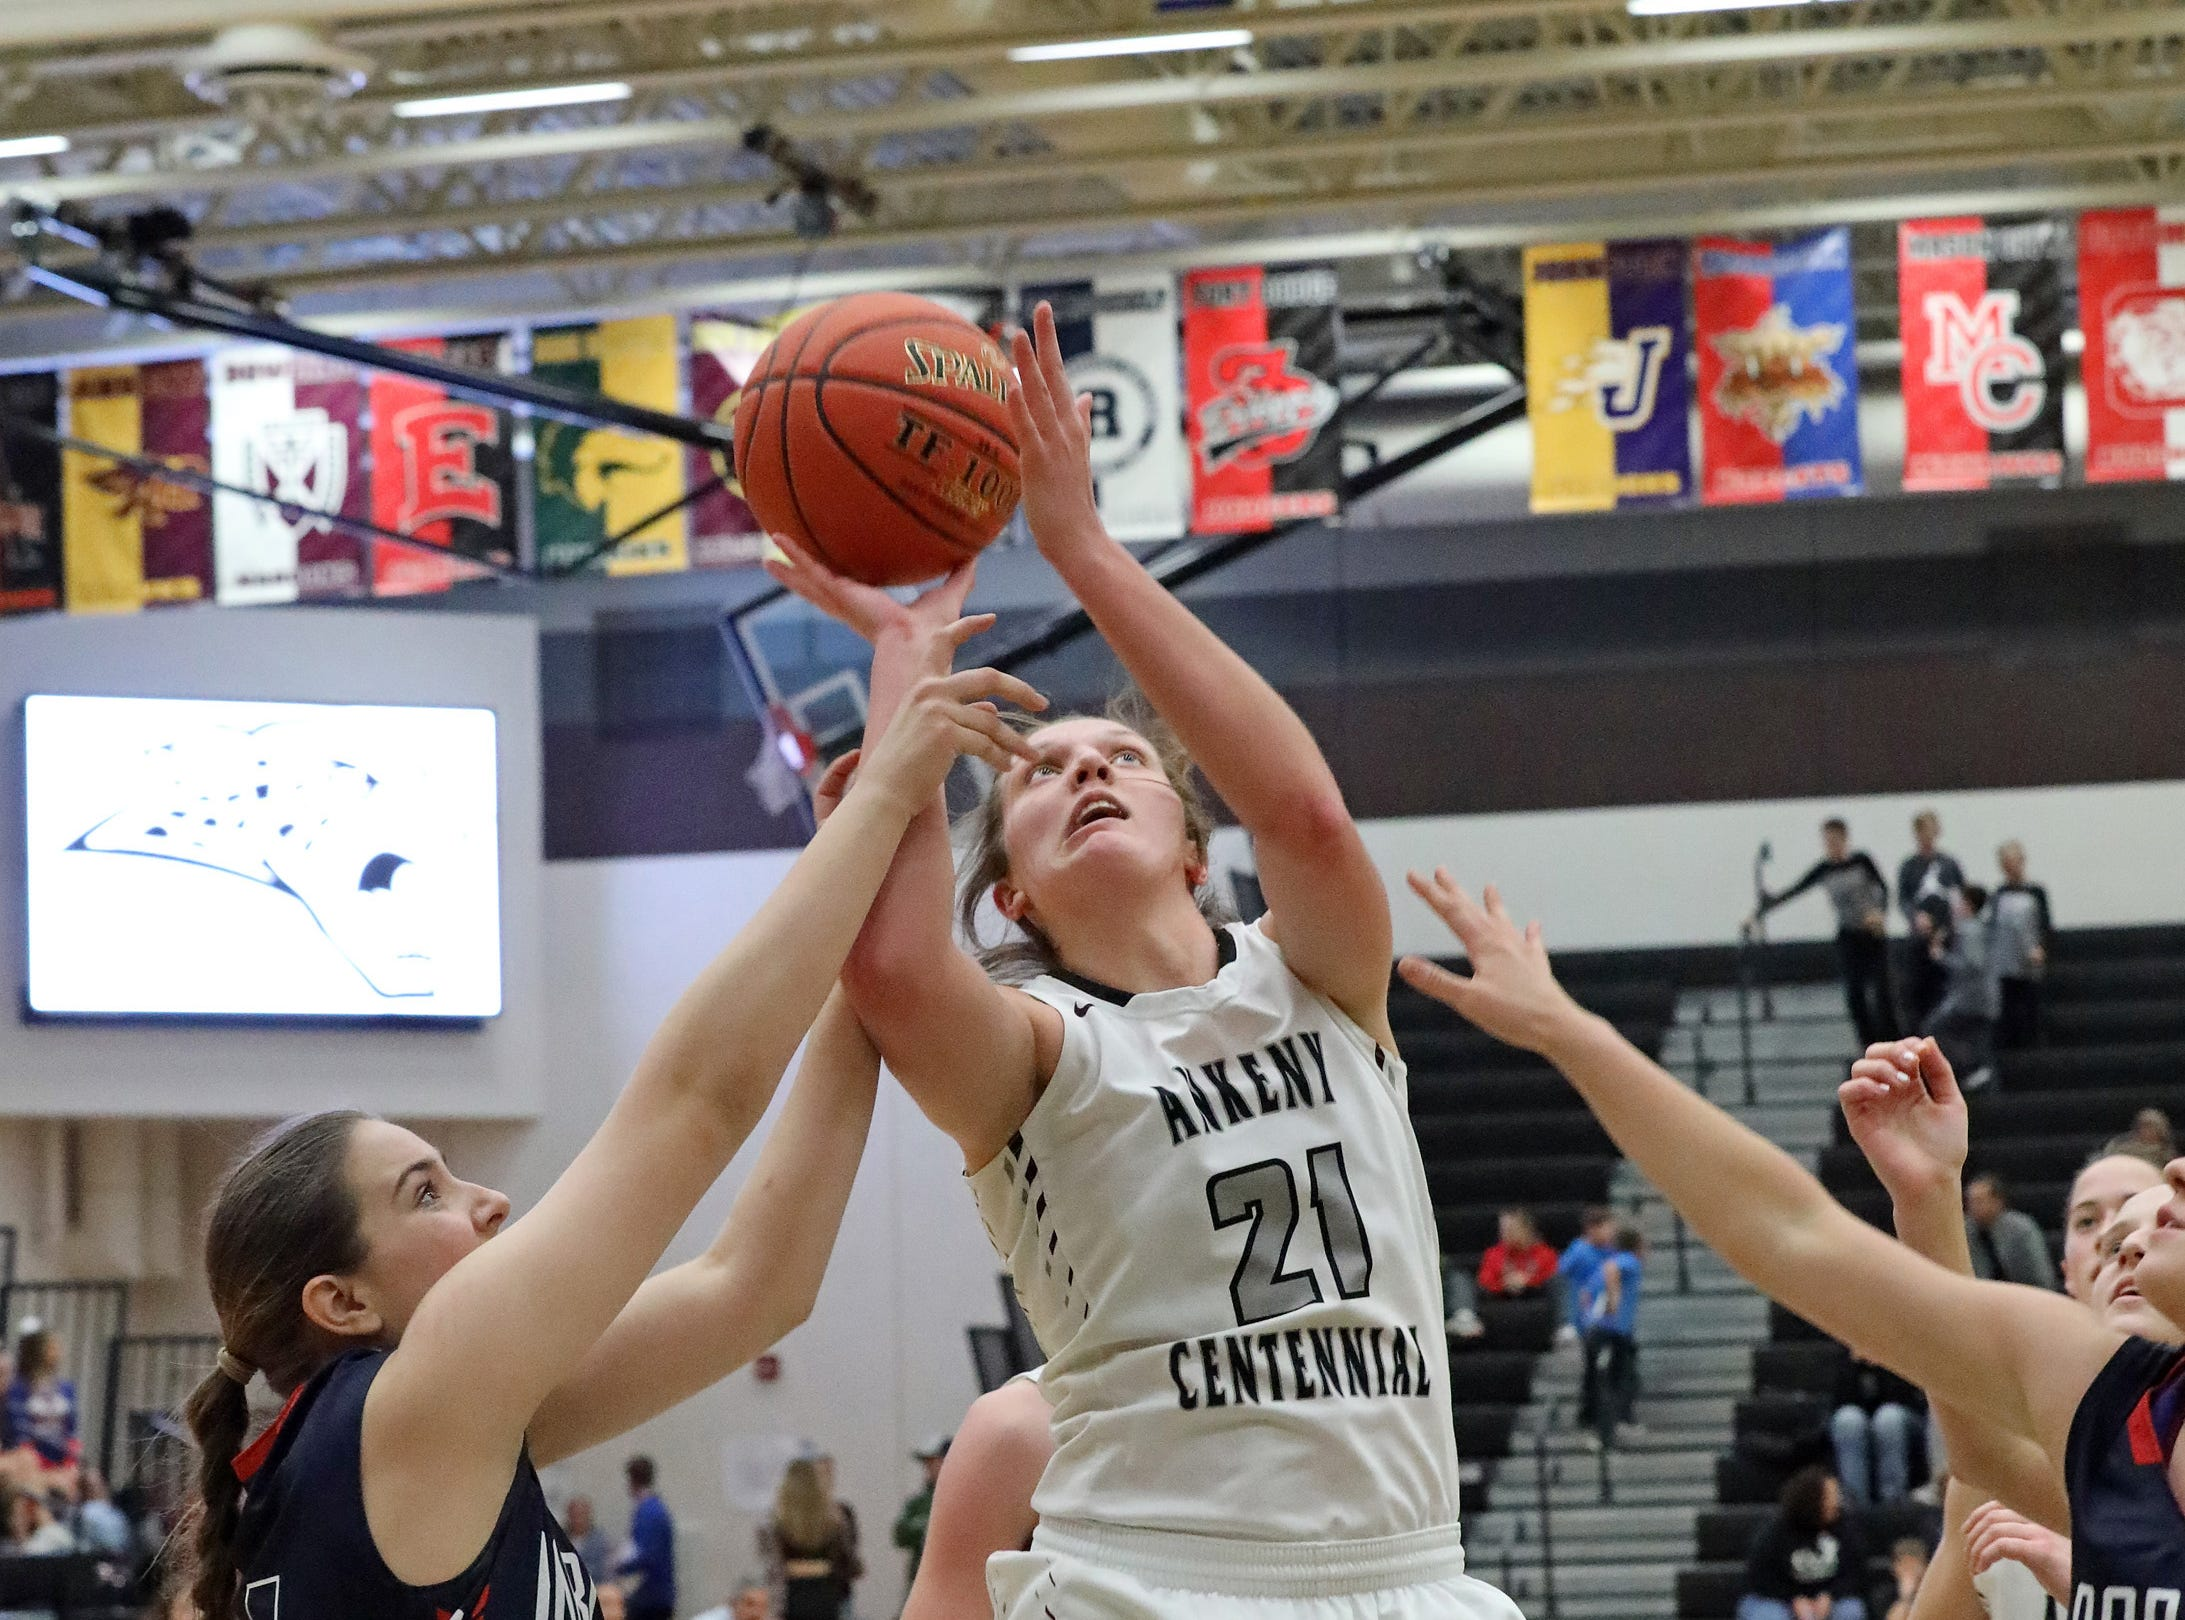 Ankeny Centennial senior Rachel Schon is fouled as she makes the shot as the Marshalltown Bobcats compete against the Ankeny Centennial Jaguars in high school girls basketball on Tuesday, Jan. 8, 2019 at Ankeny Centennial High School. ACHS won 70 to 19.